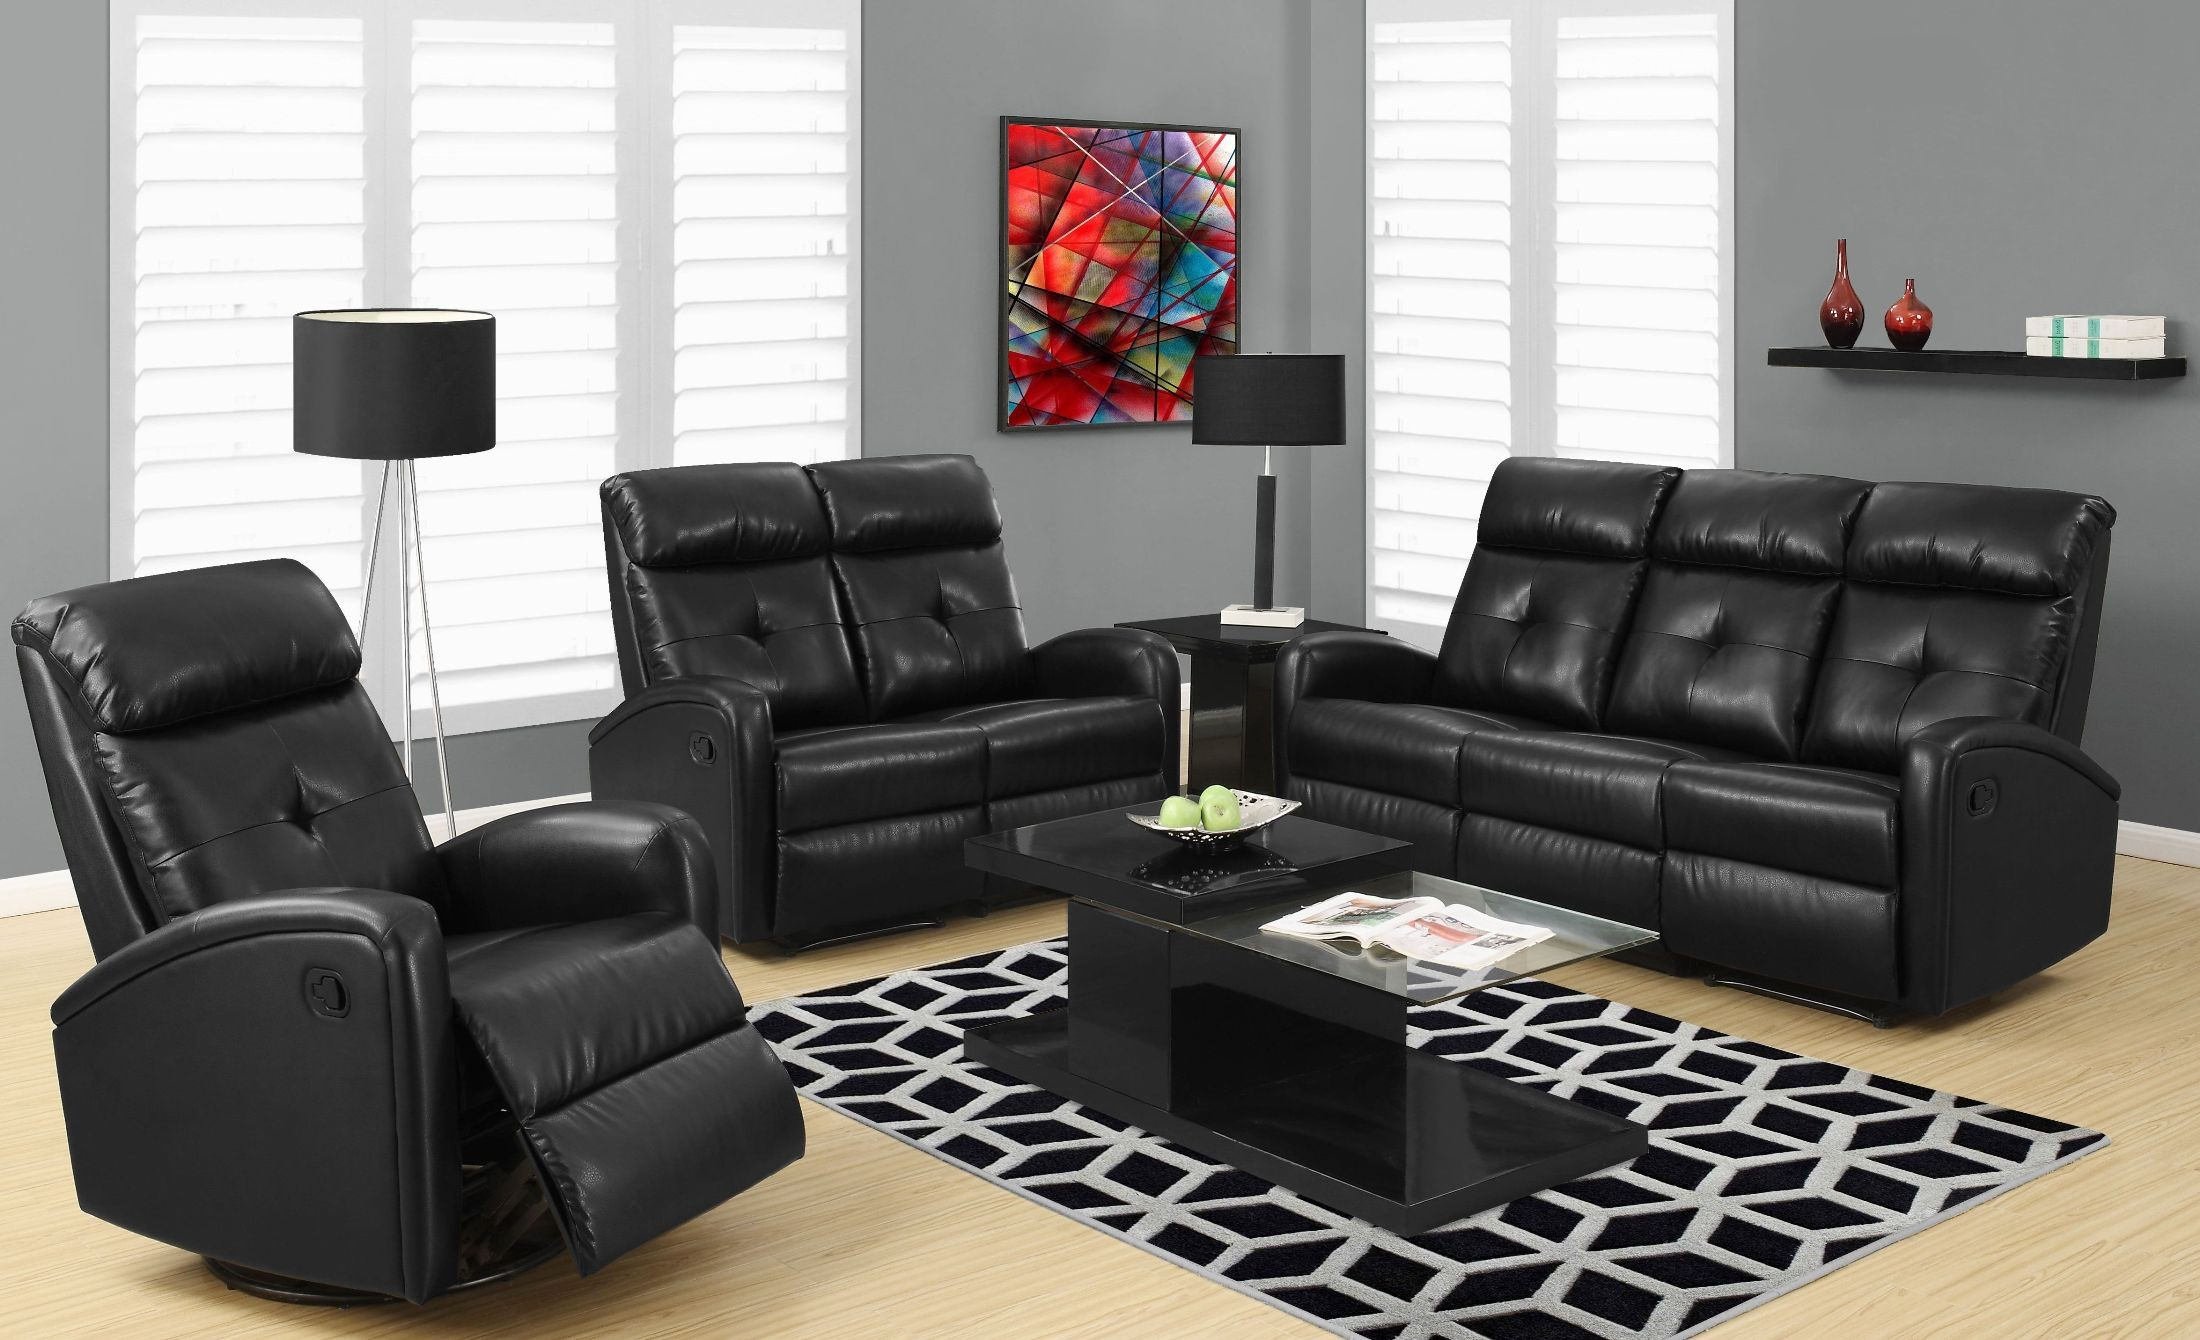 88bk 3 Black Bonded Leather Reclining Living Room Set From